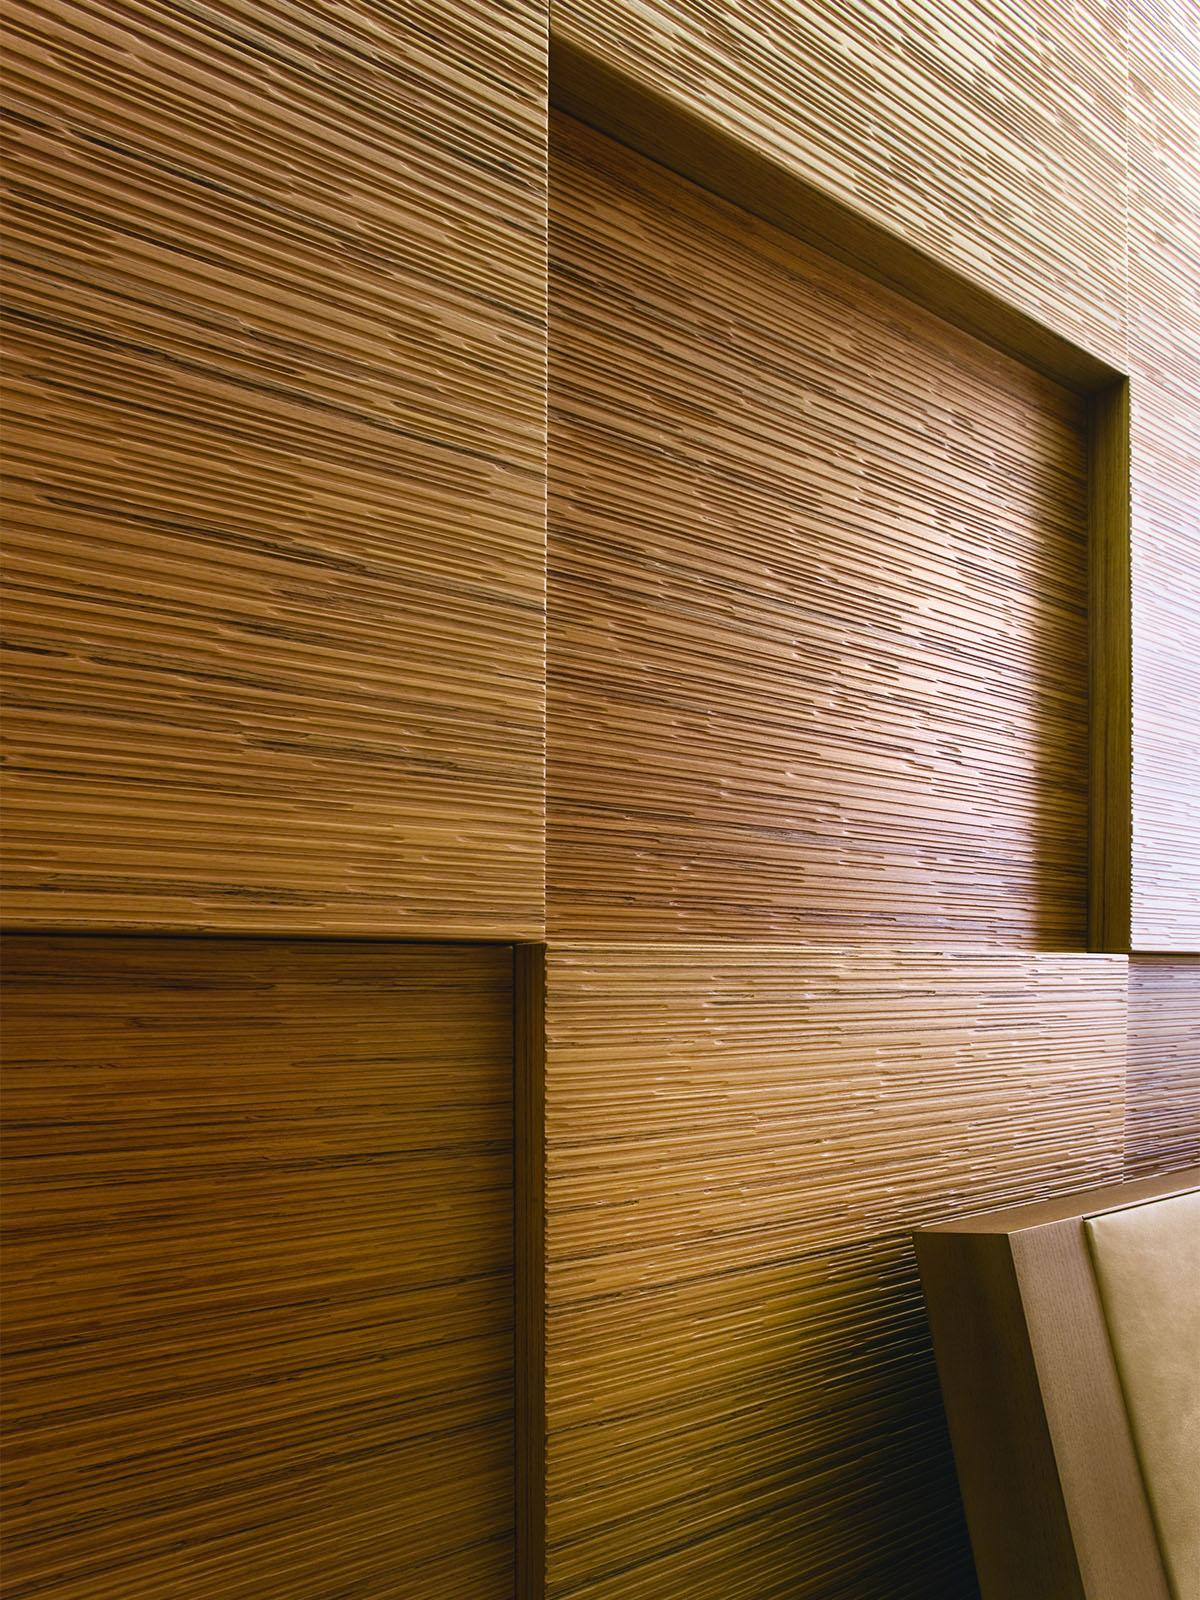 Doors wall panels cabinets wall panels decor acoustic laurameroni - Decorative acoustic wall panels ...